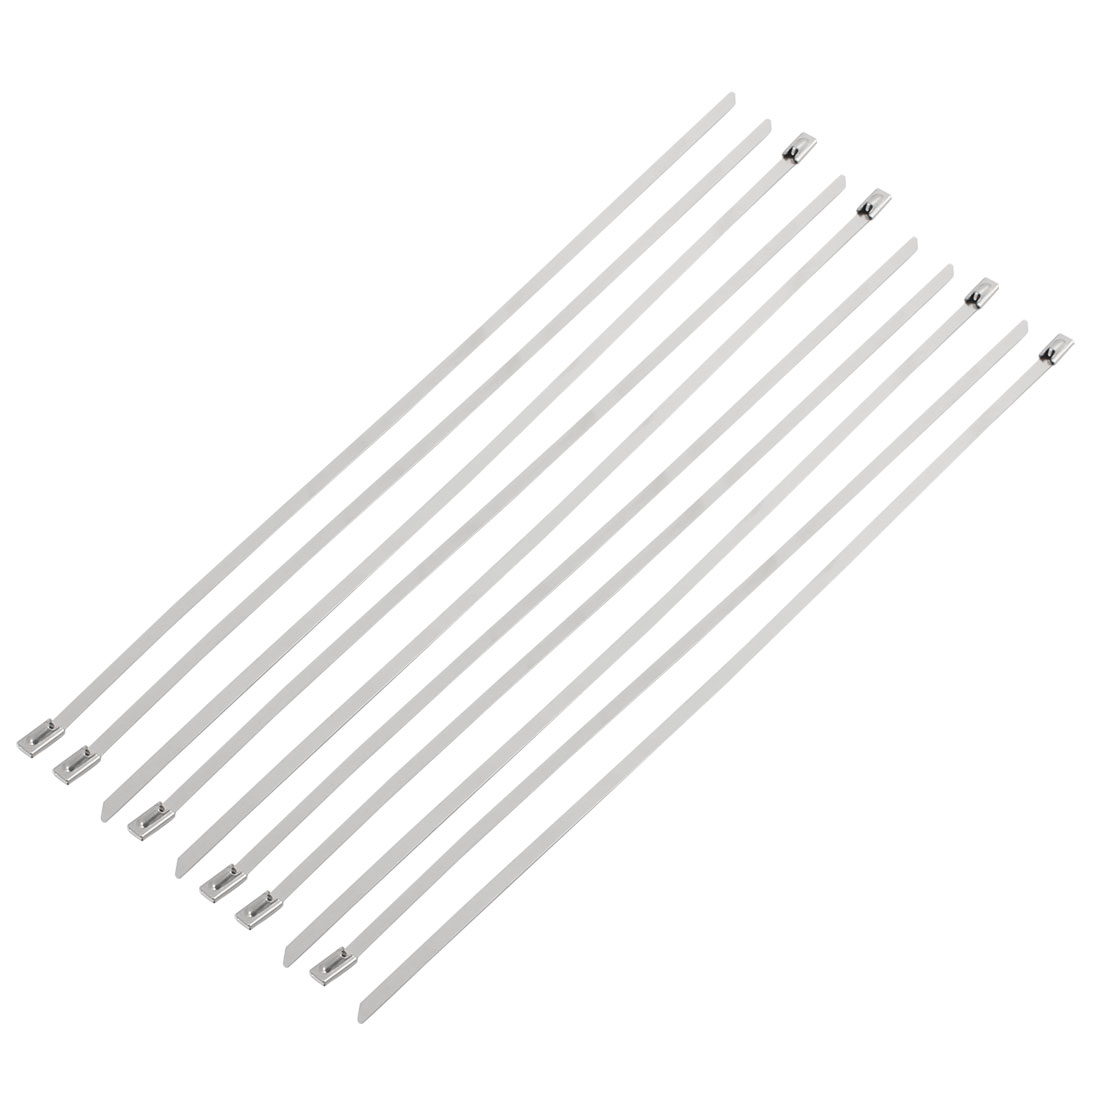 10pcs 4.6x300mm Stainless Steel Metal Exhaust Pipe Header Cable Zip Tie Strap